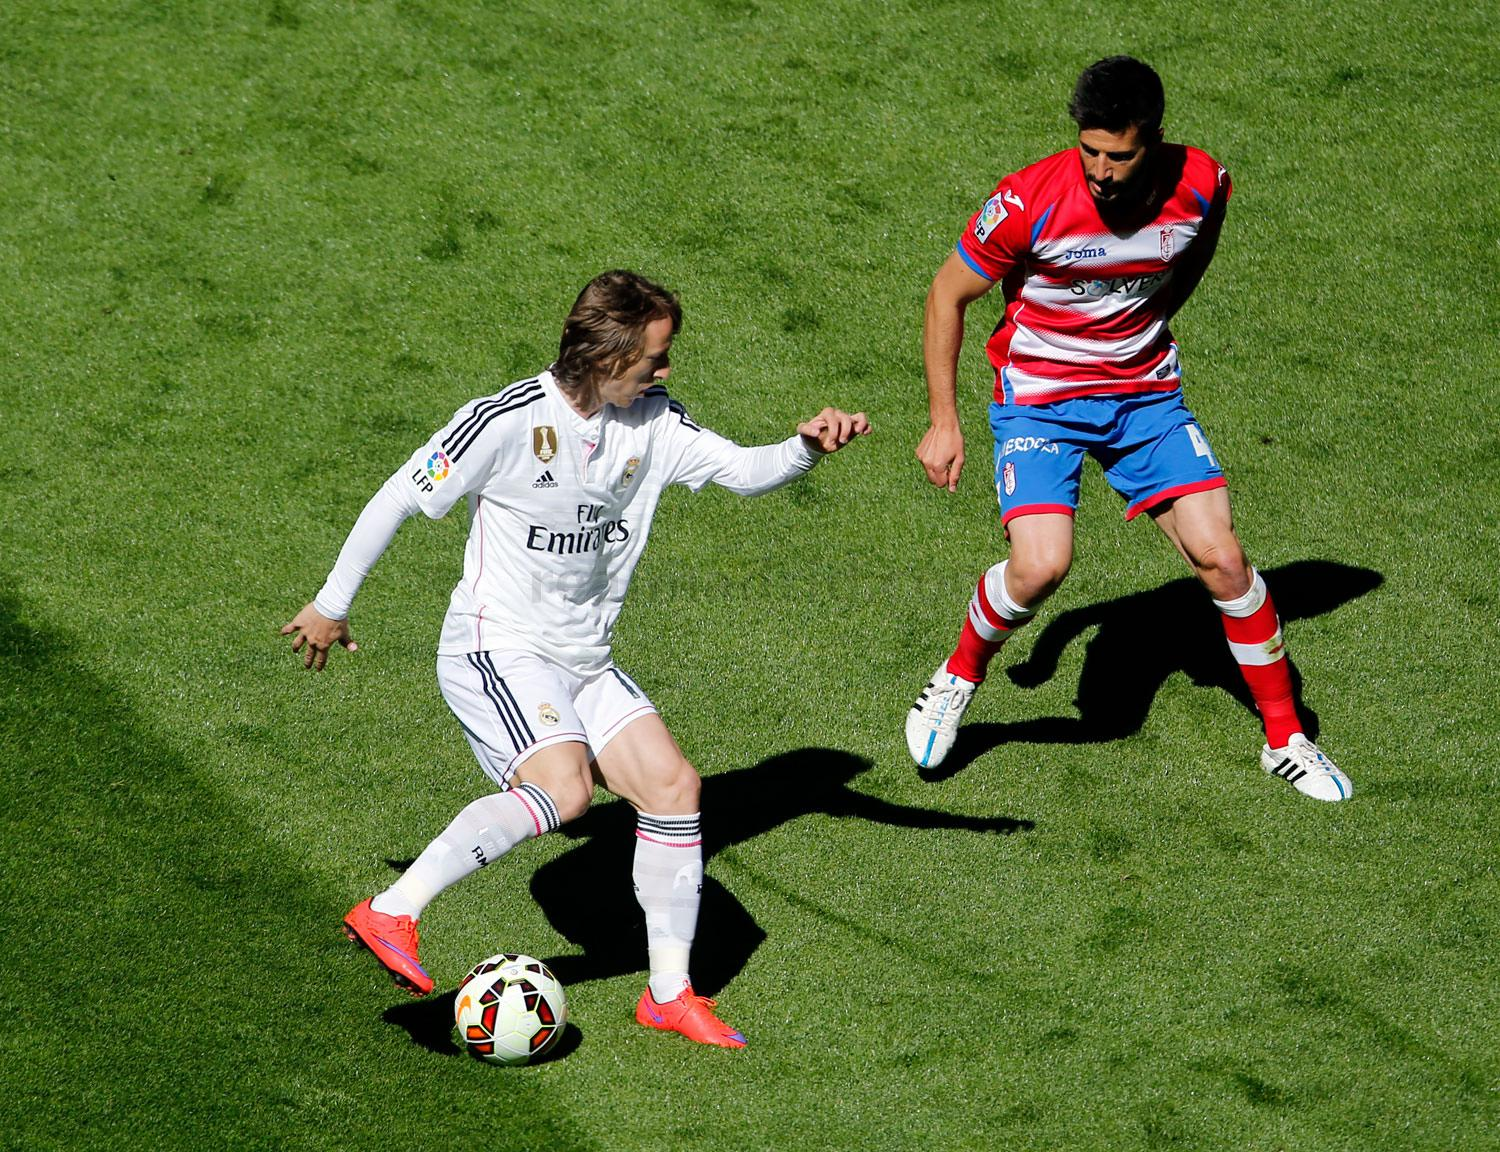 Real Madrid - Real Madrid - Granada - 05-04-2015